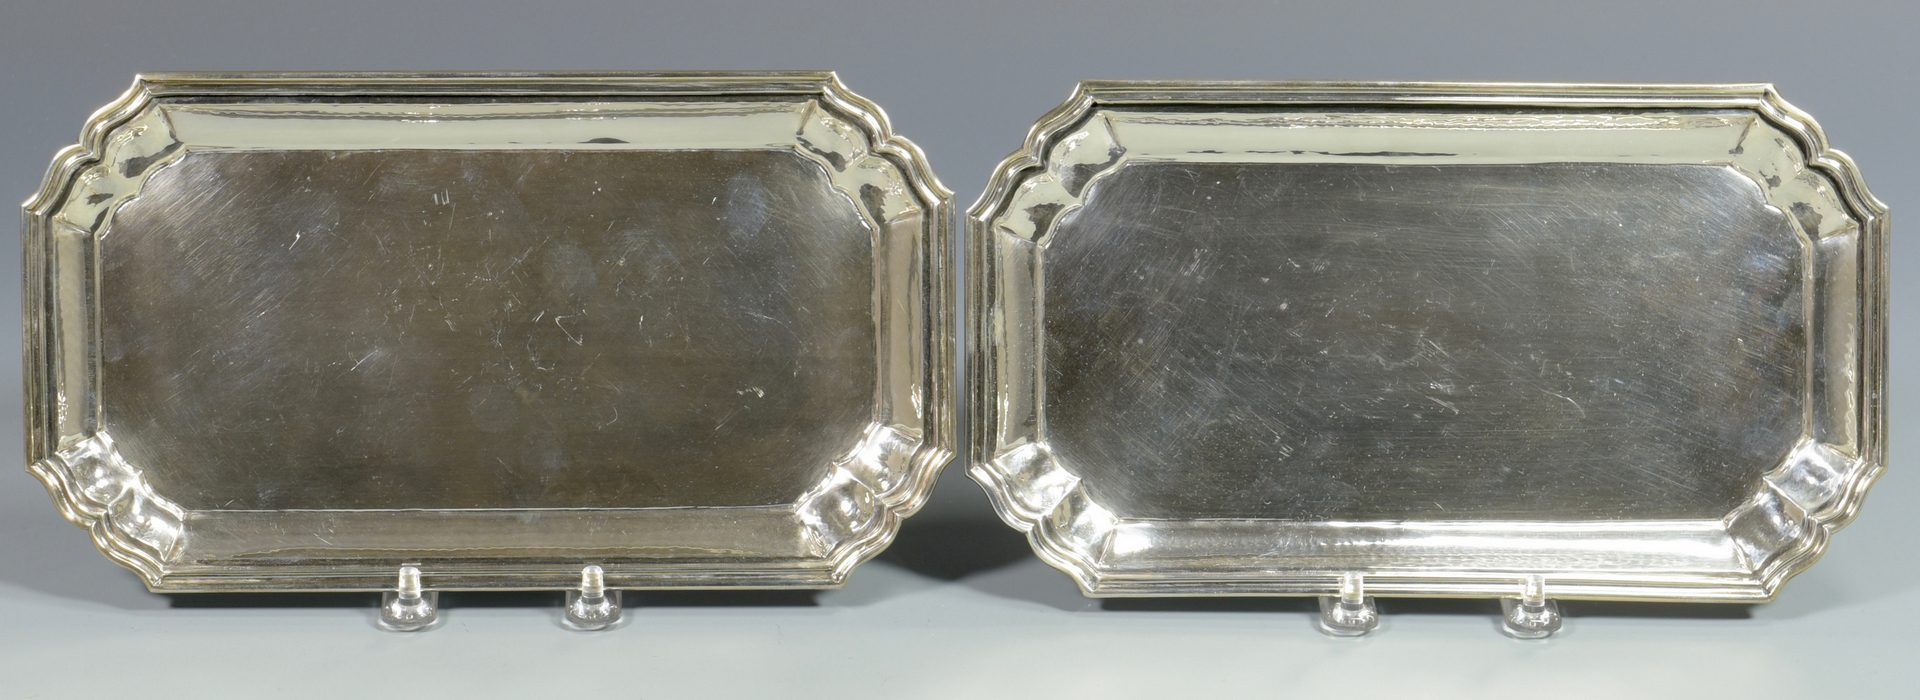 Lot 839: 3 Sterling Silver Trays, 2 Buccellati